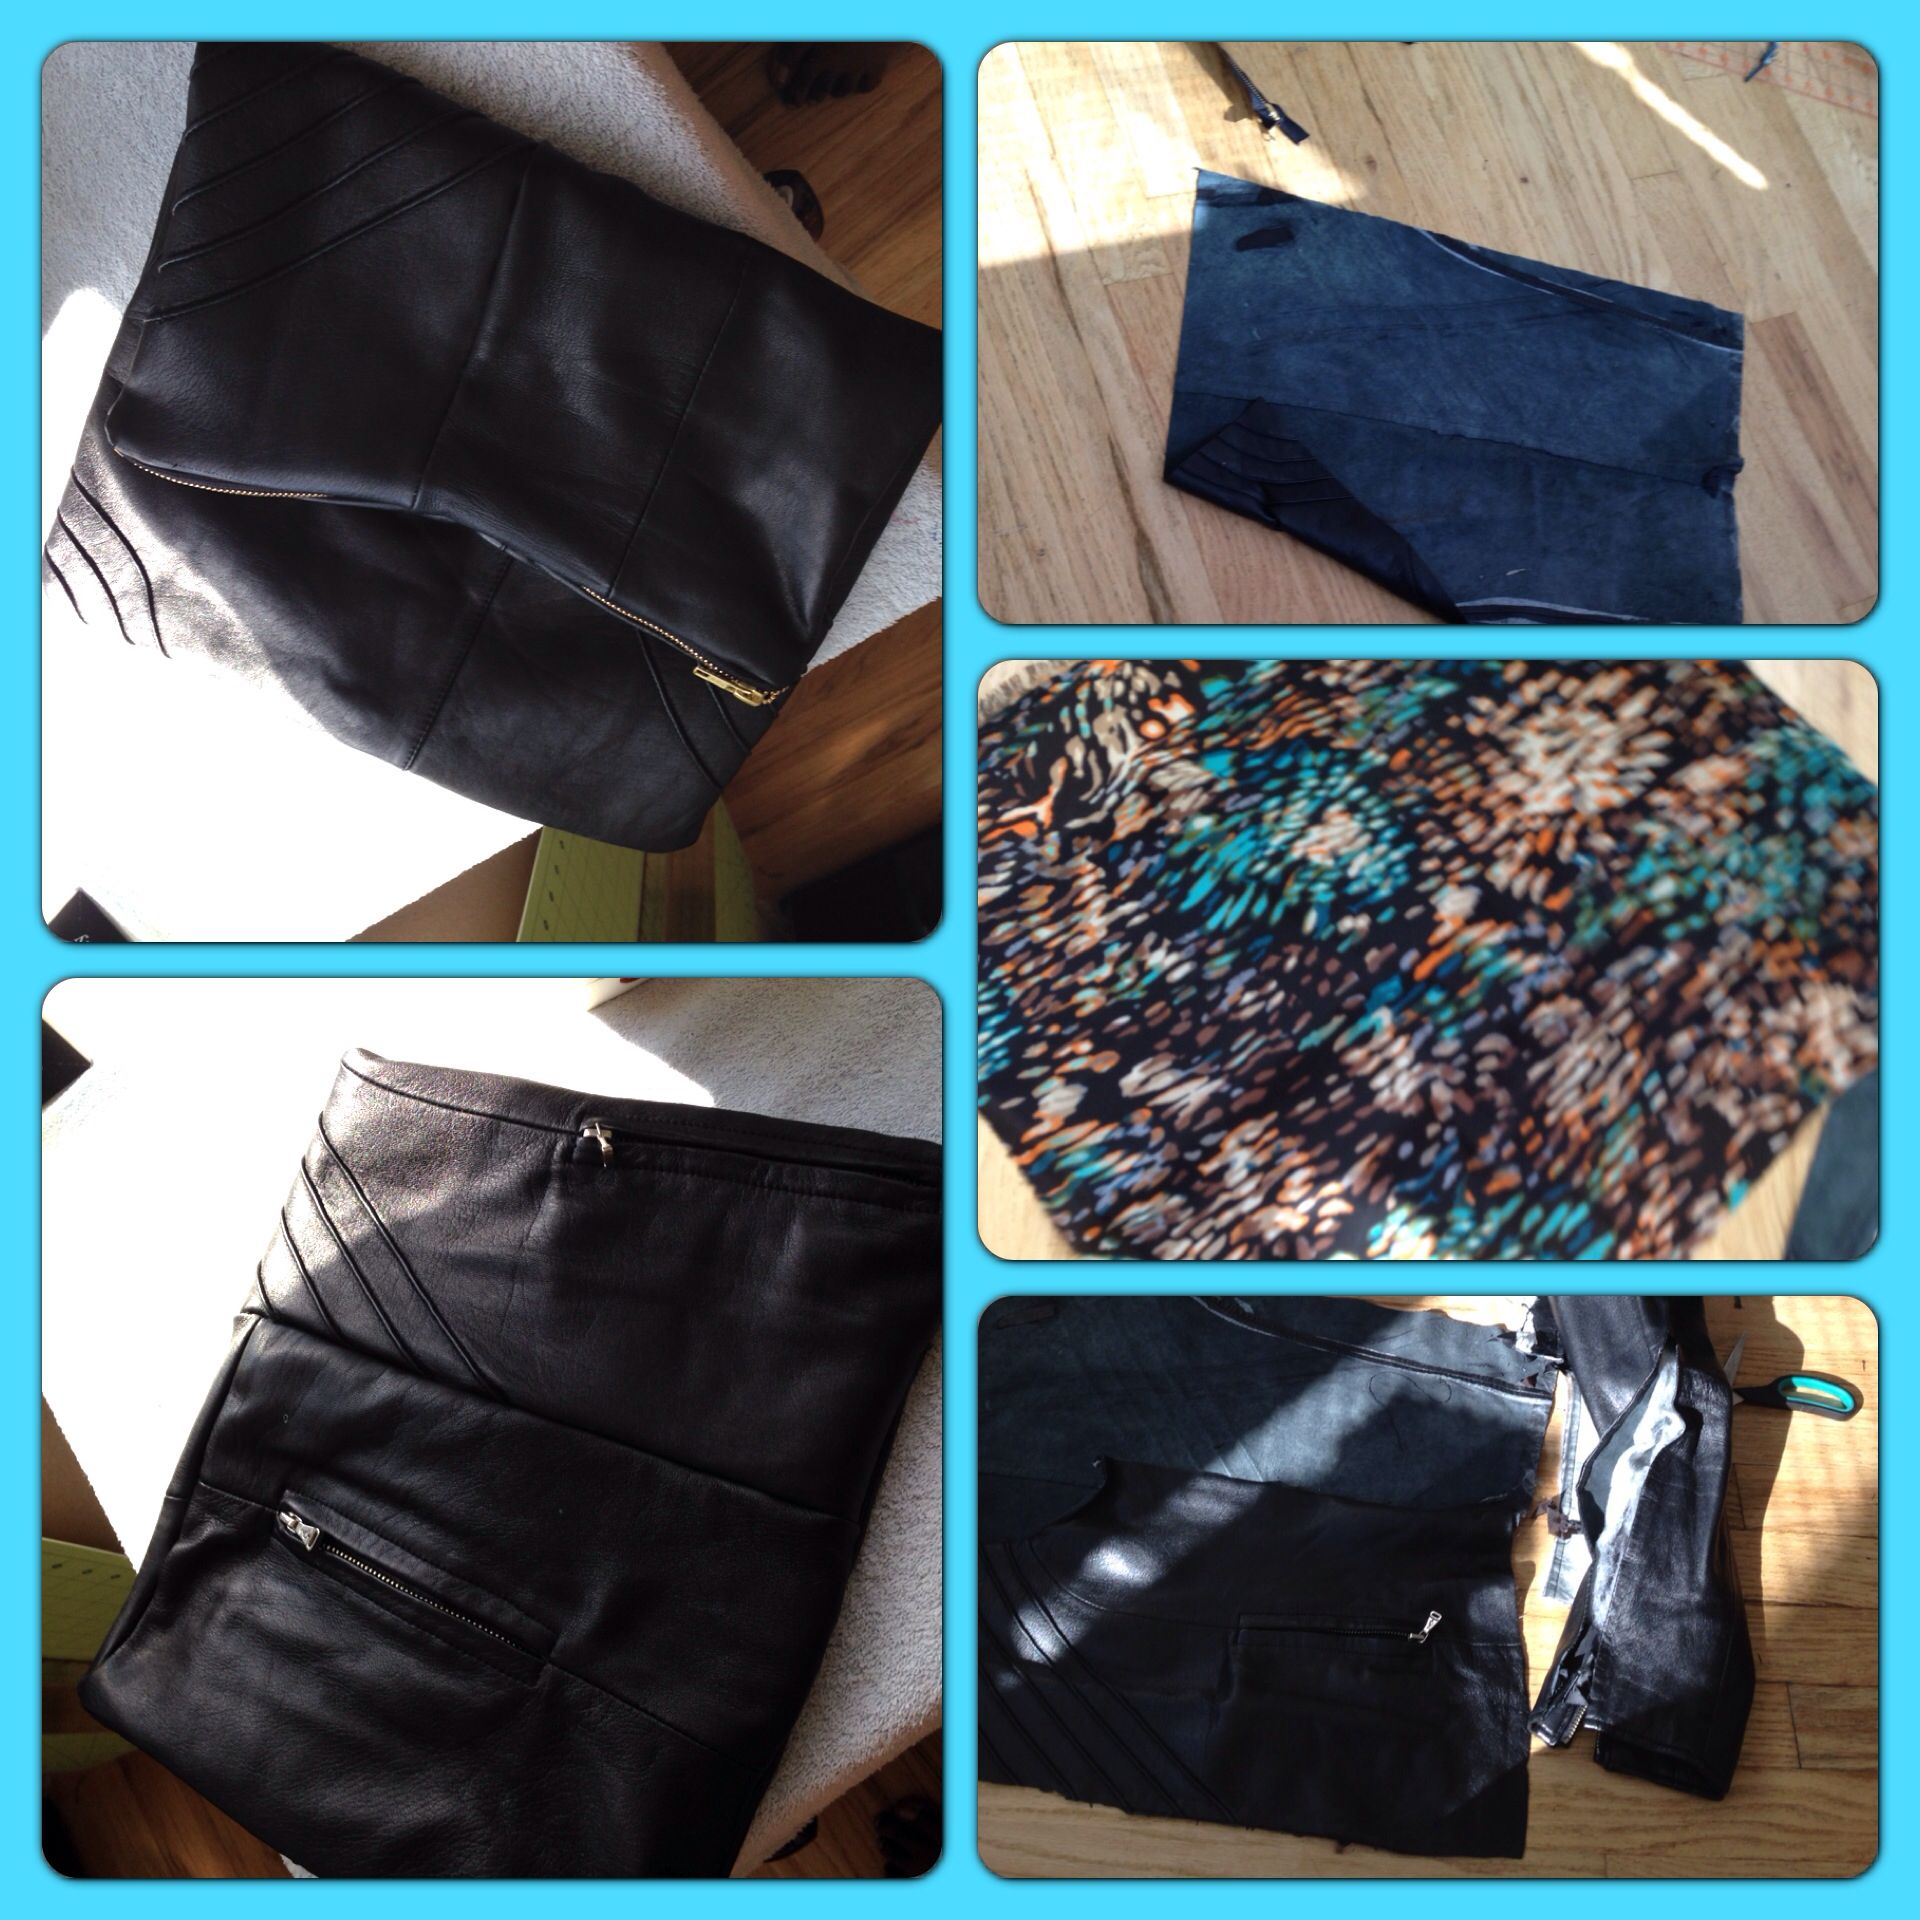 Leather jacket diy - Clutch Purse Made Out Of An Old Leather Jacket Diy Sewing